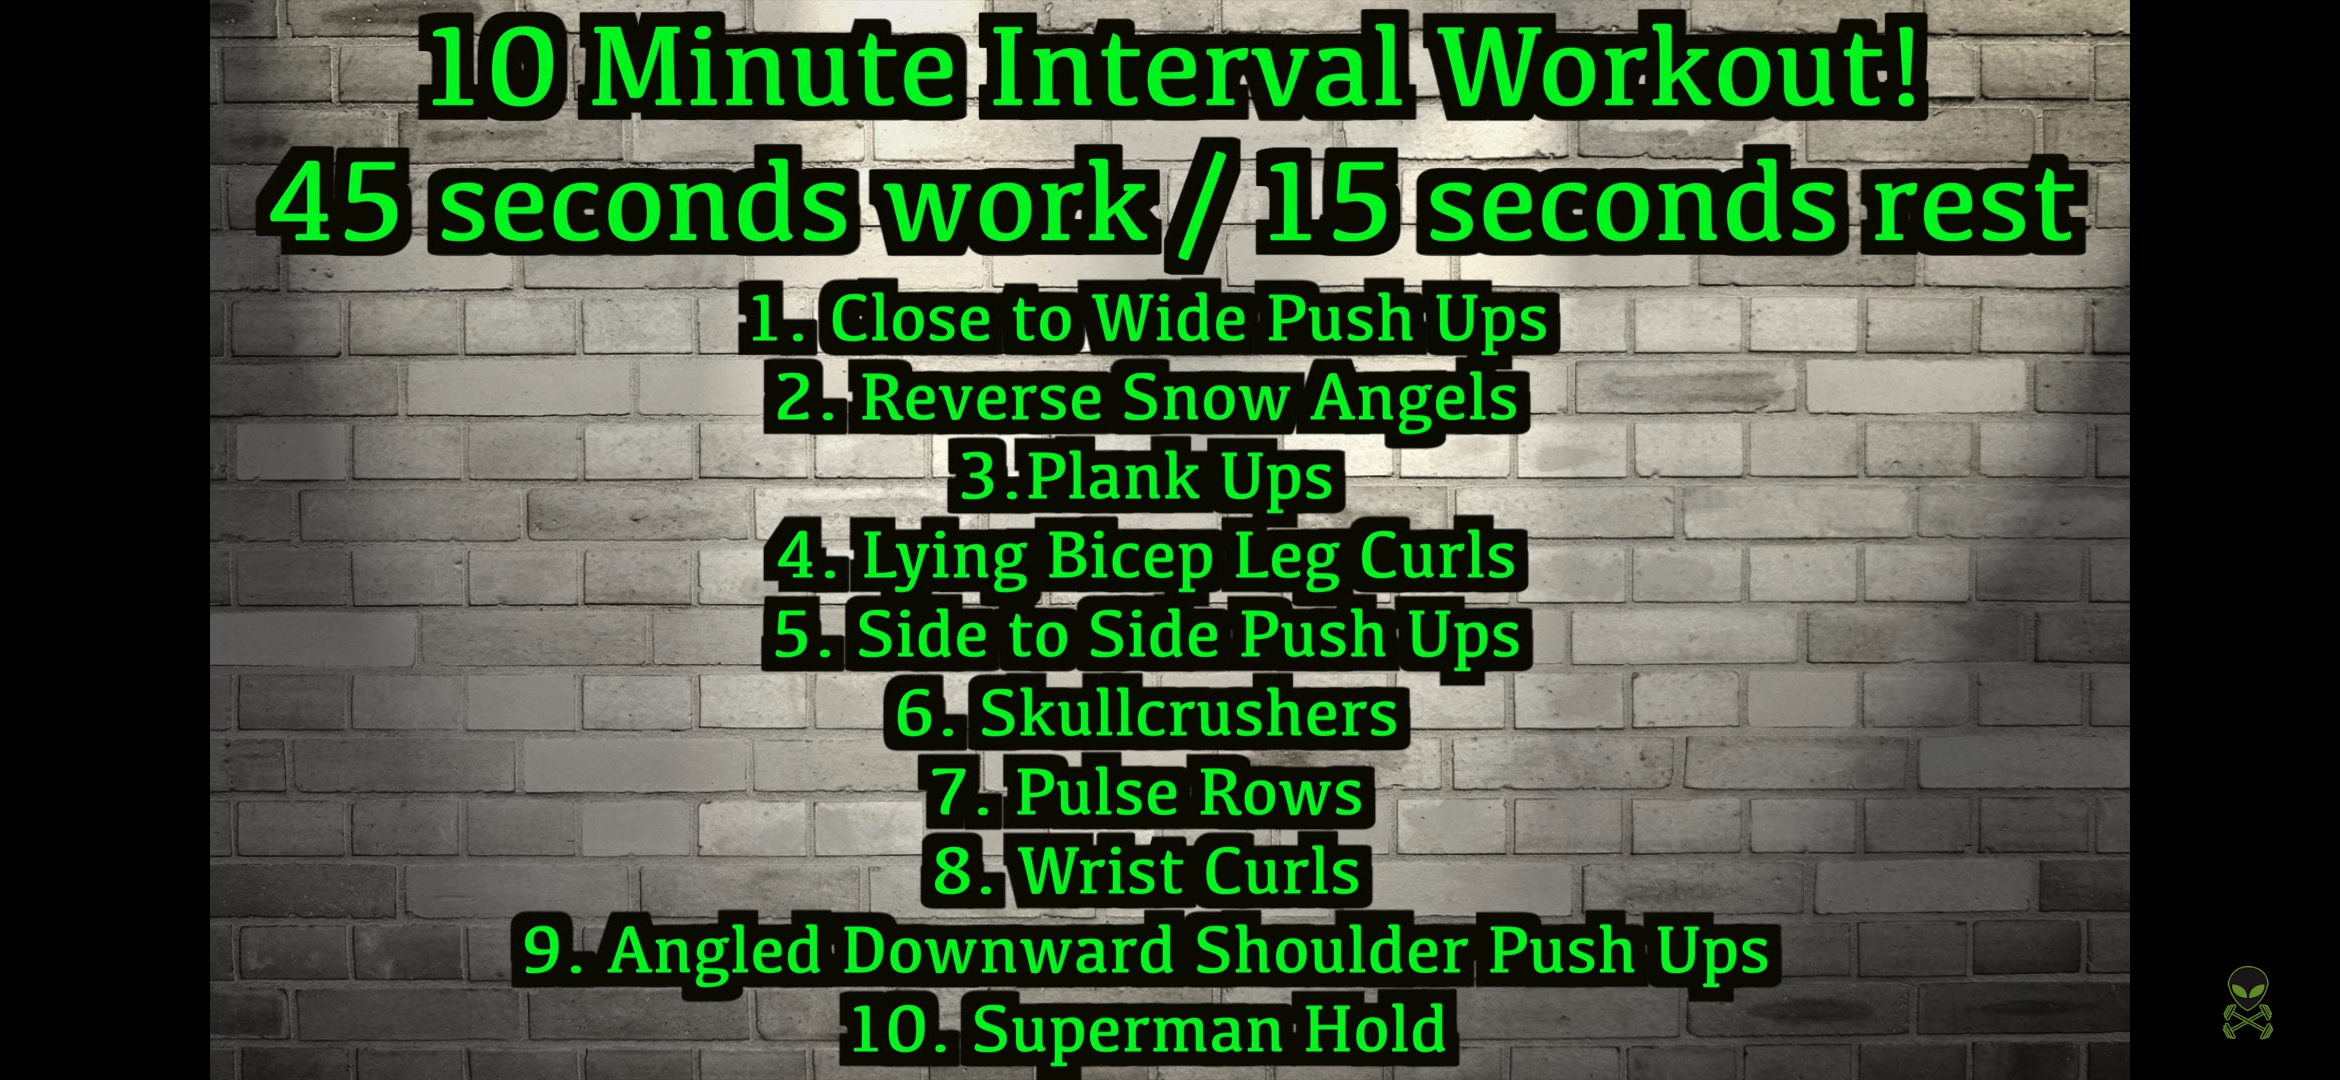 [Image] is this plan a good way to build upper body muscle with no equipment? Also how many times a day should i be doing this workout? Its only 10 minutes. I'm skinny fat and really need to build upper body muscle basically everywhere.